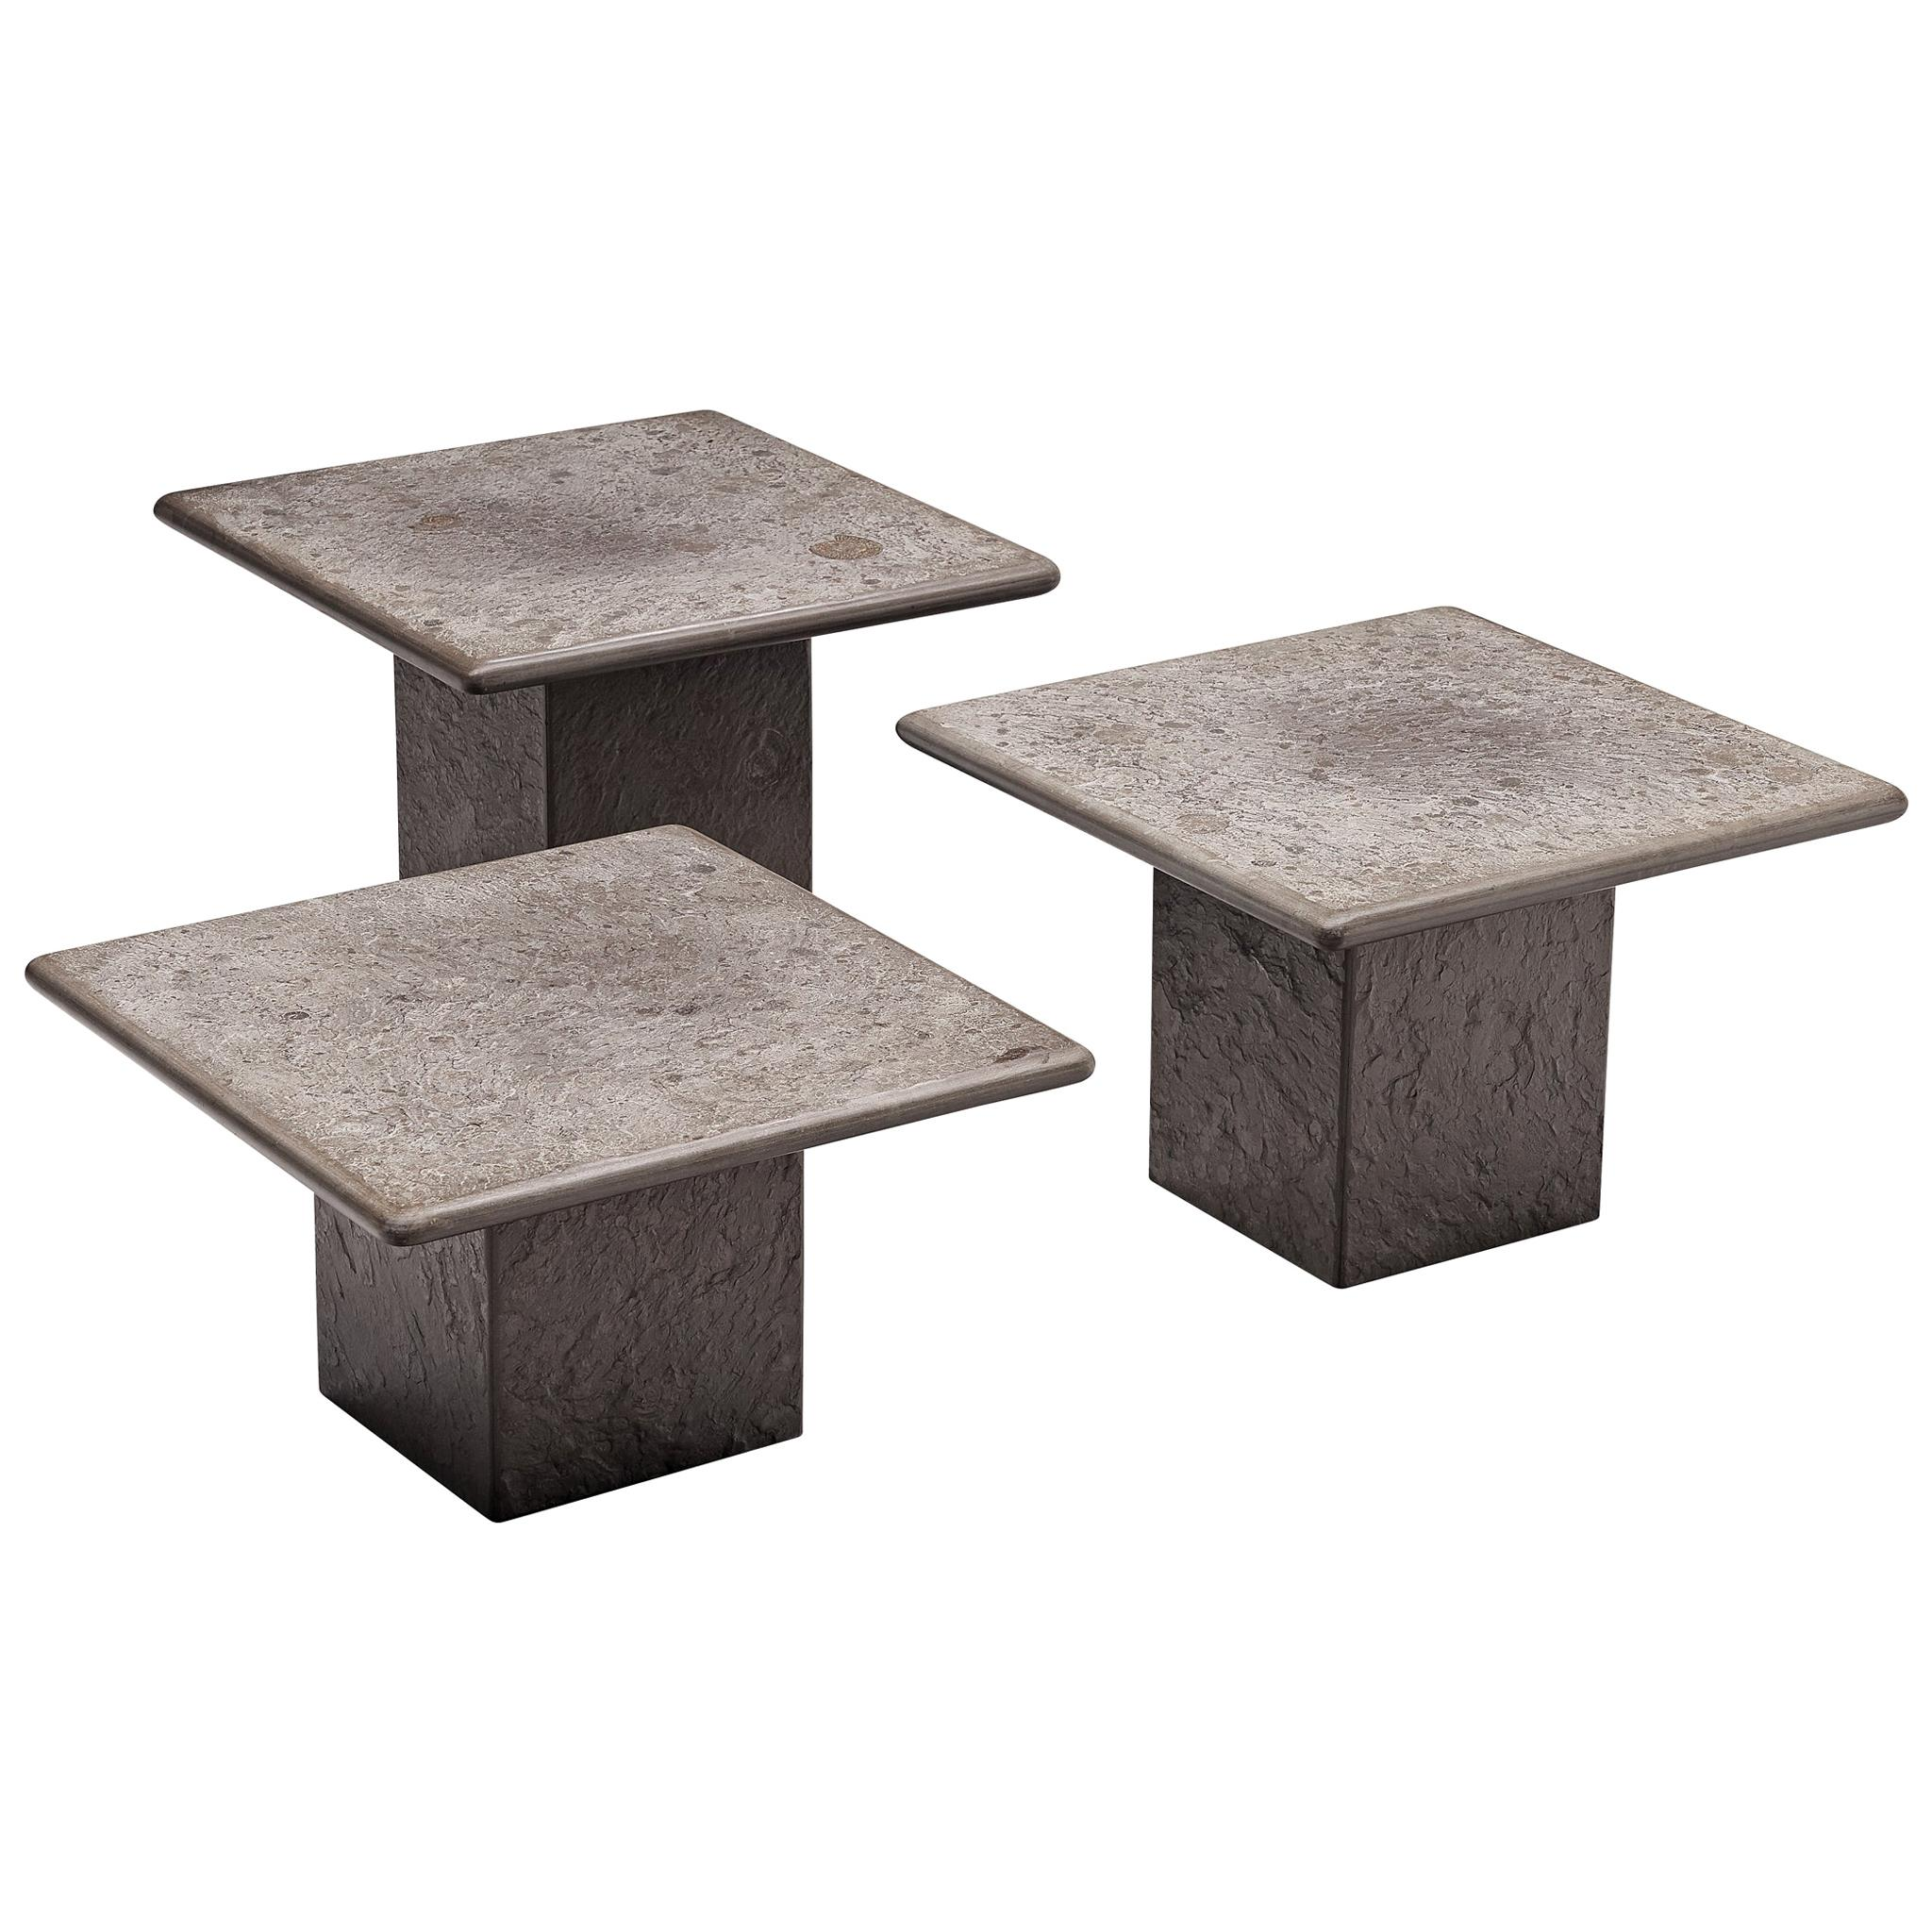 Set of Three Italian Side Tables in Fossil Stone